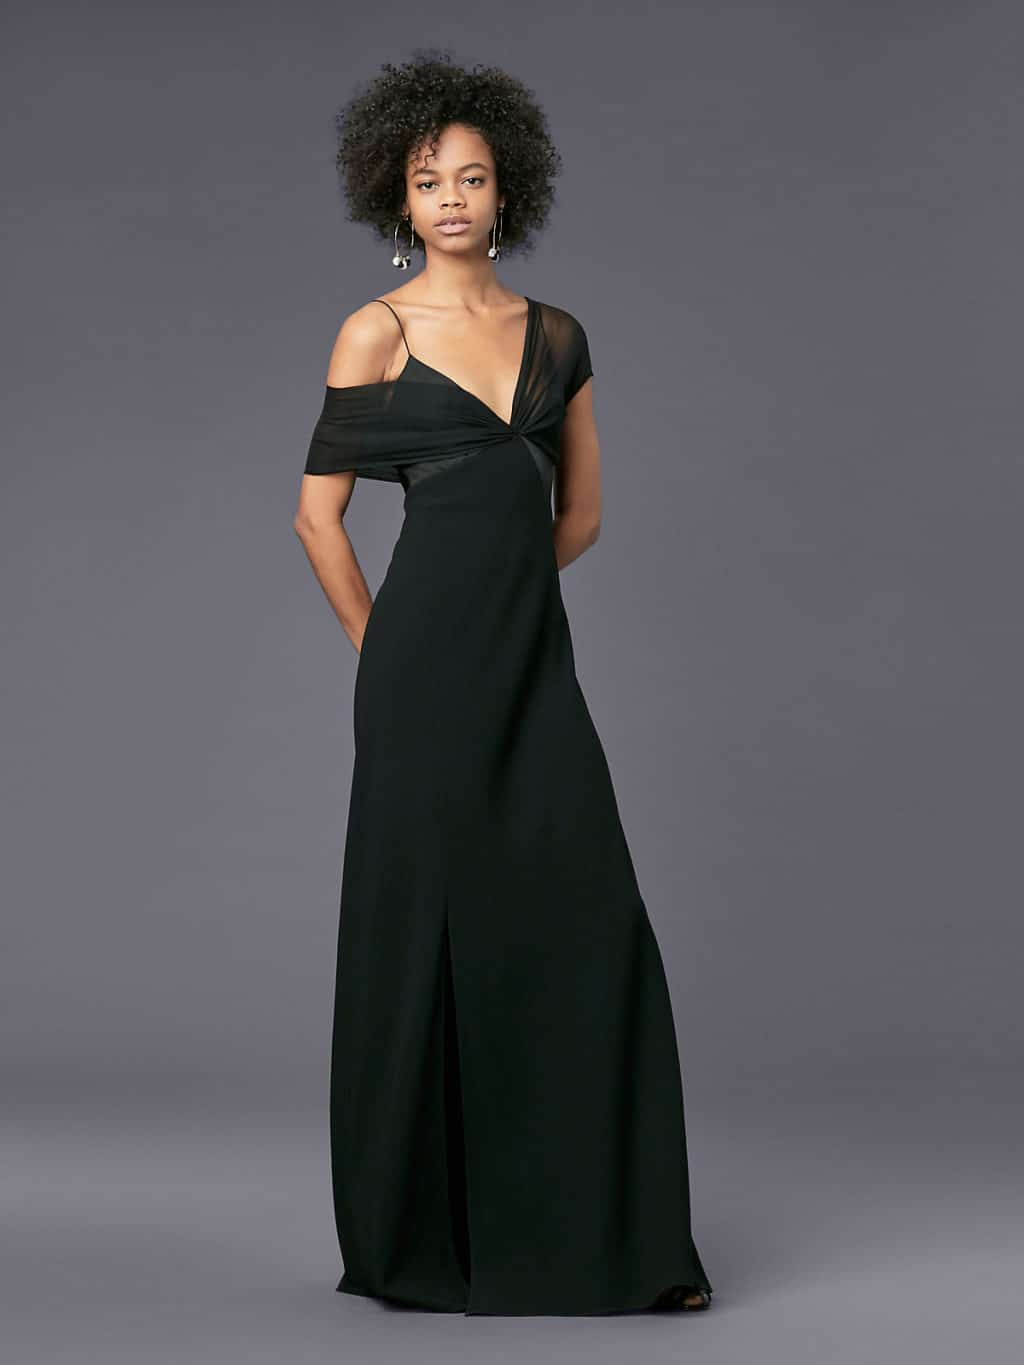 DVF Asymmetric Sleeve Knotted Black Gown - We Select Dresses